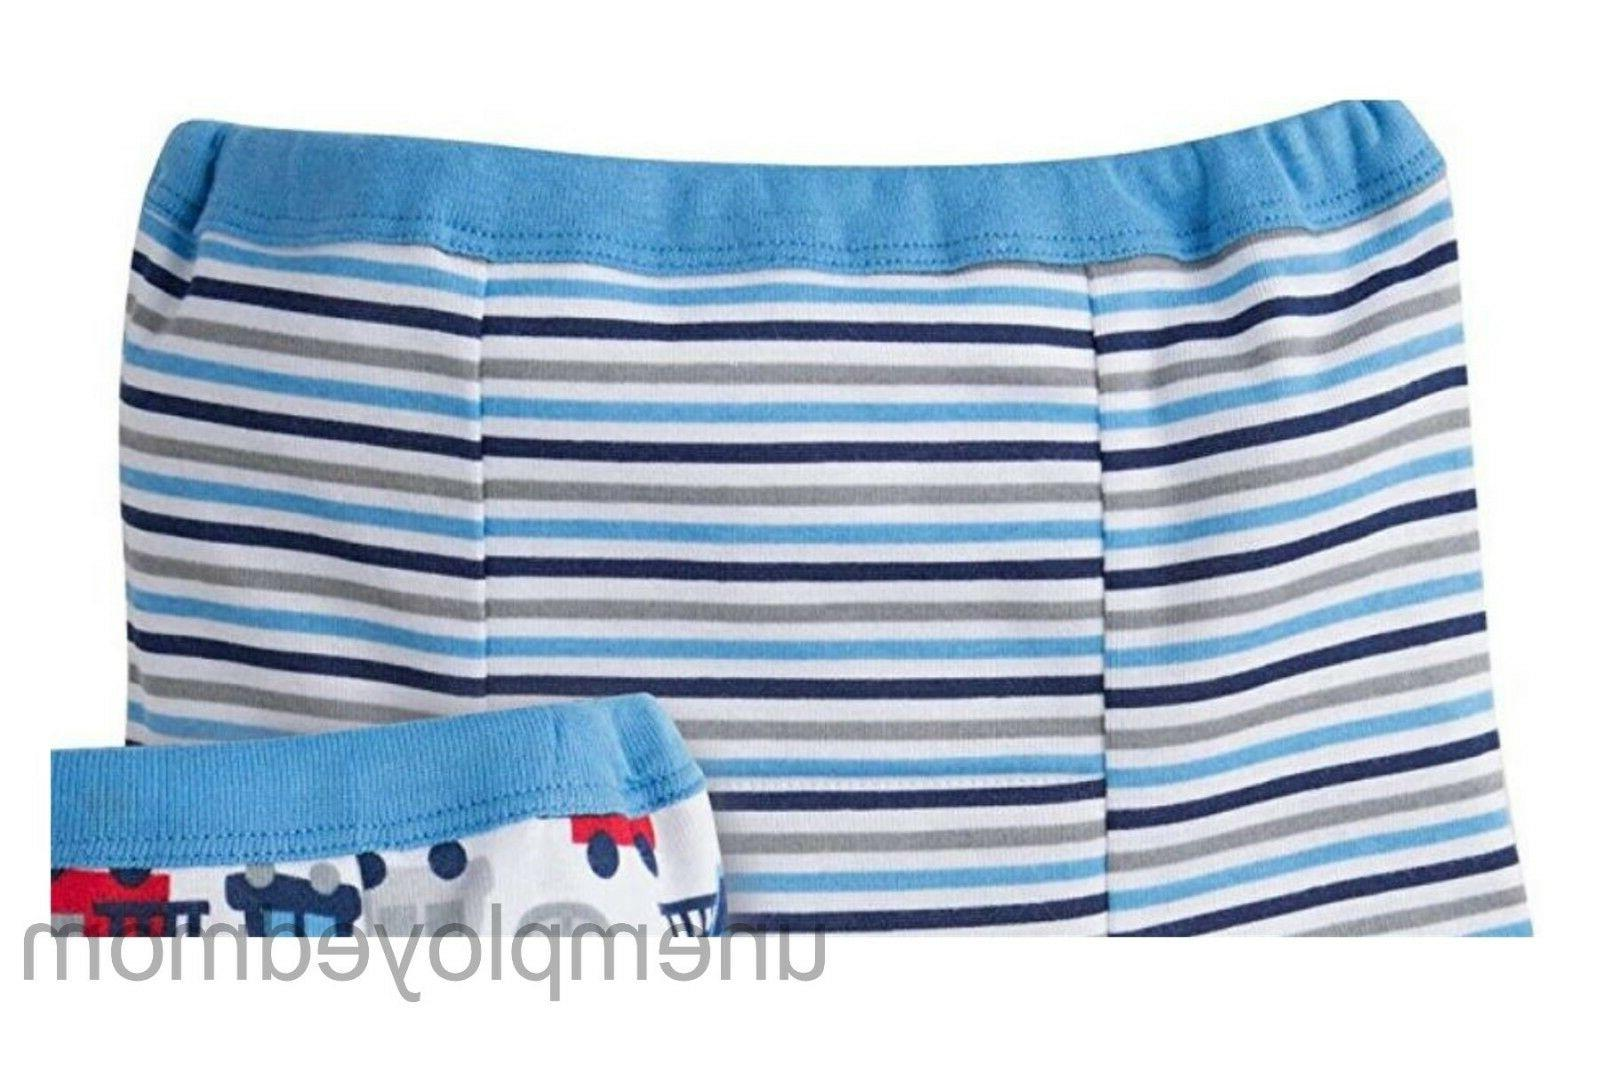 Toddlers Training Lot of 3 pair Cotton Underwear 3T